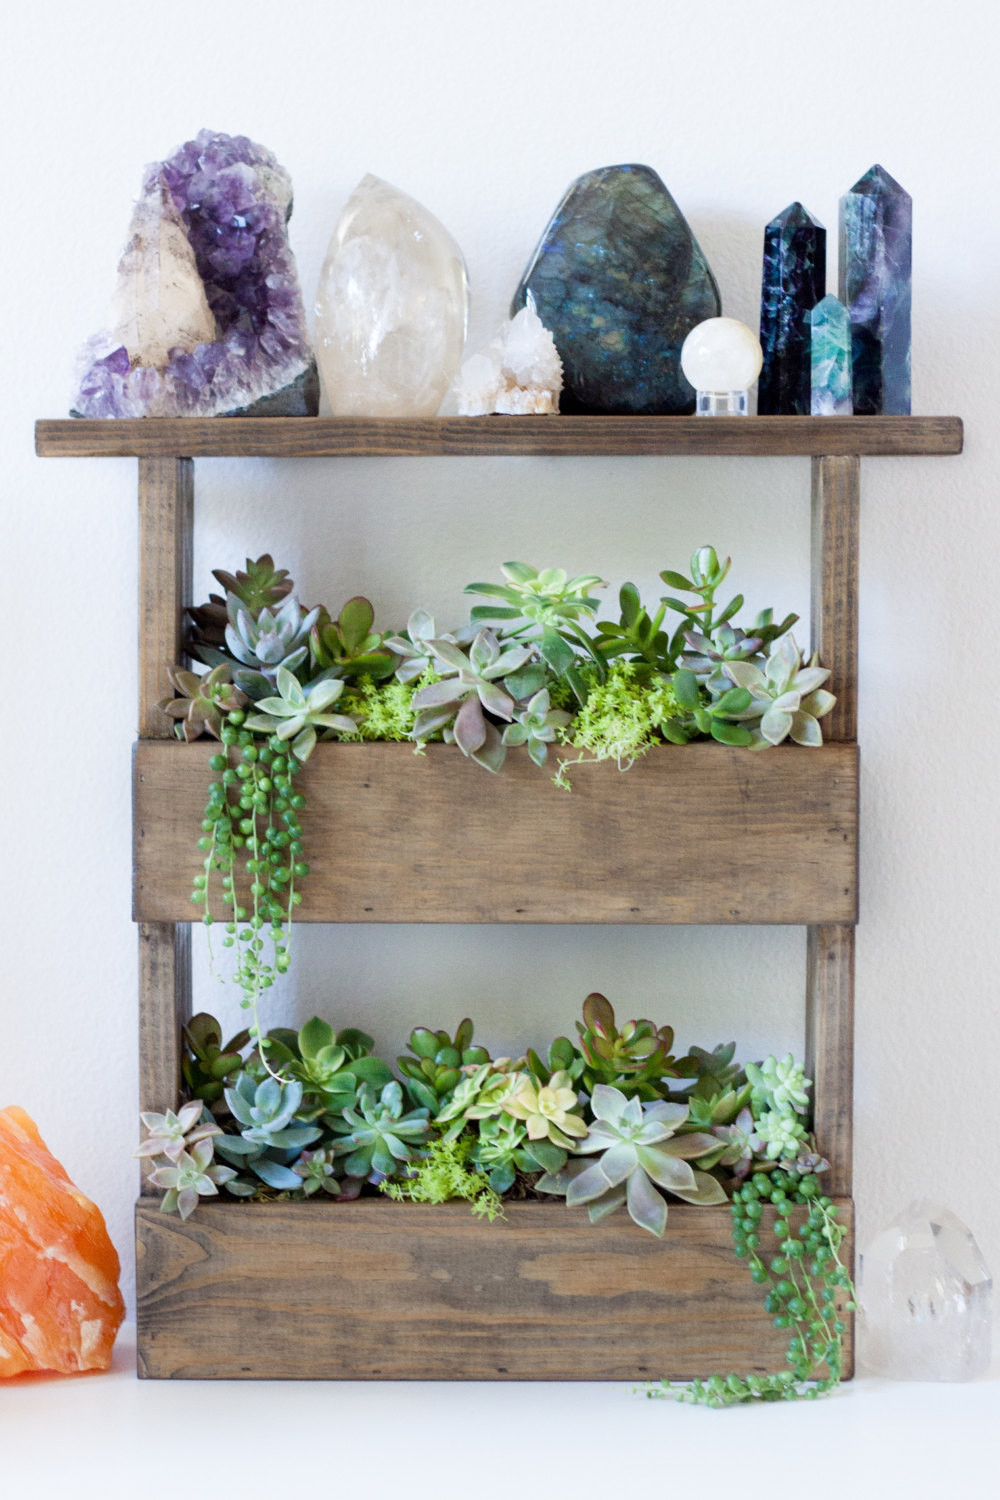 Best ideas about Vertical Wall Shelf . Save or Pin Vertical Wall Planter Box Pallet Style & Crystal Display Shelf Now.